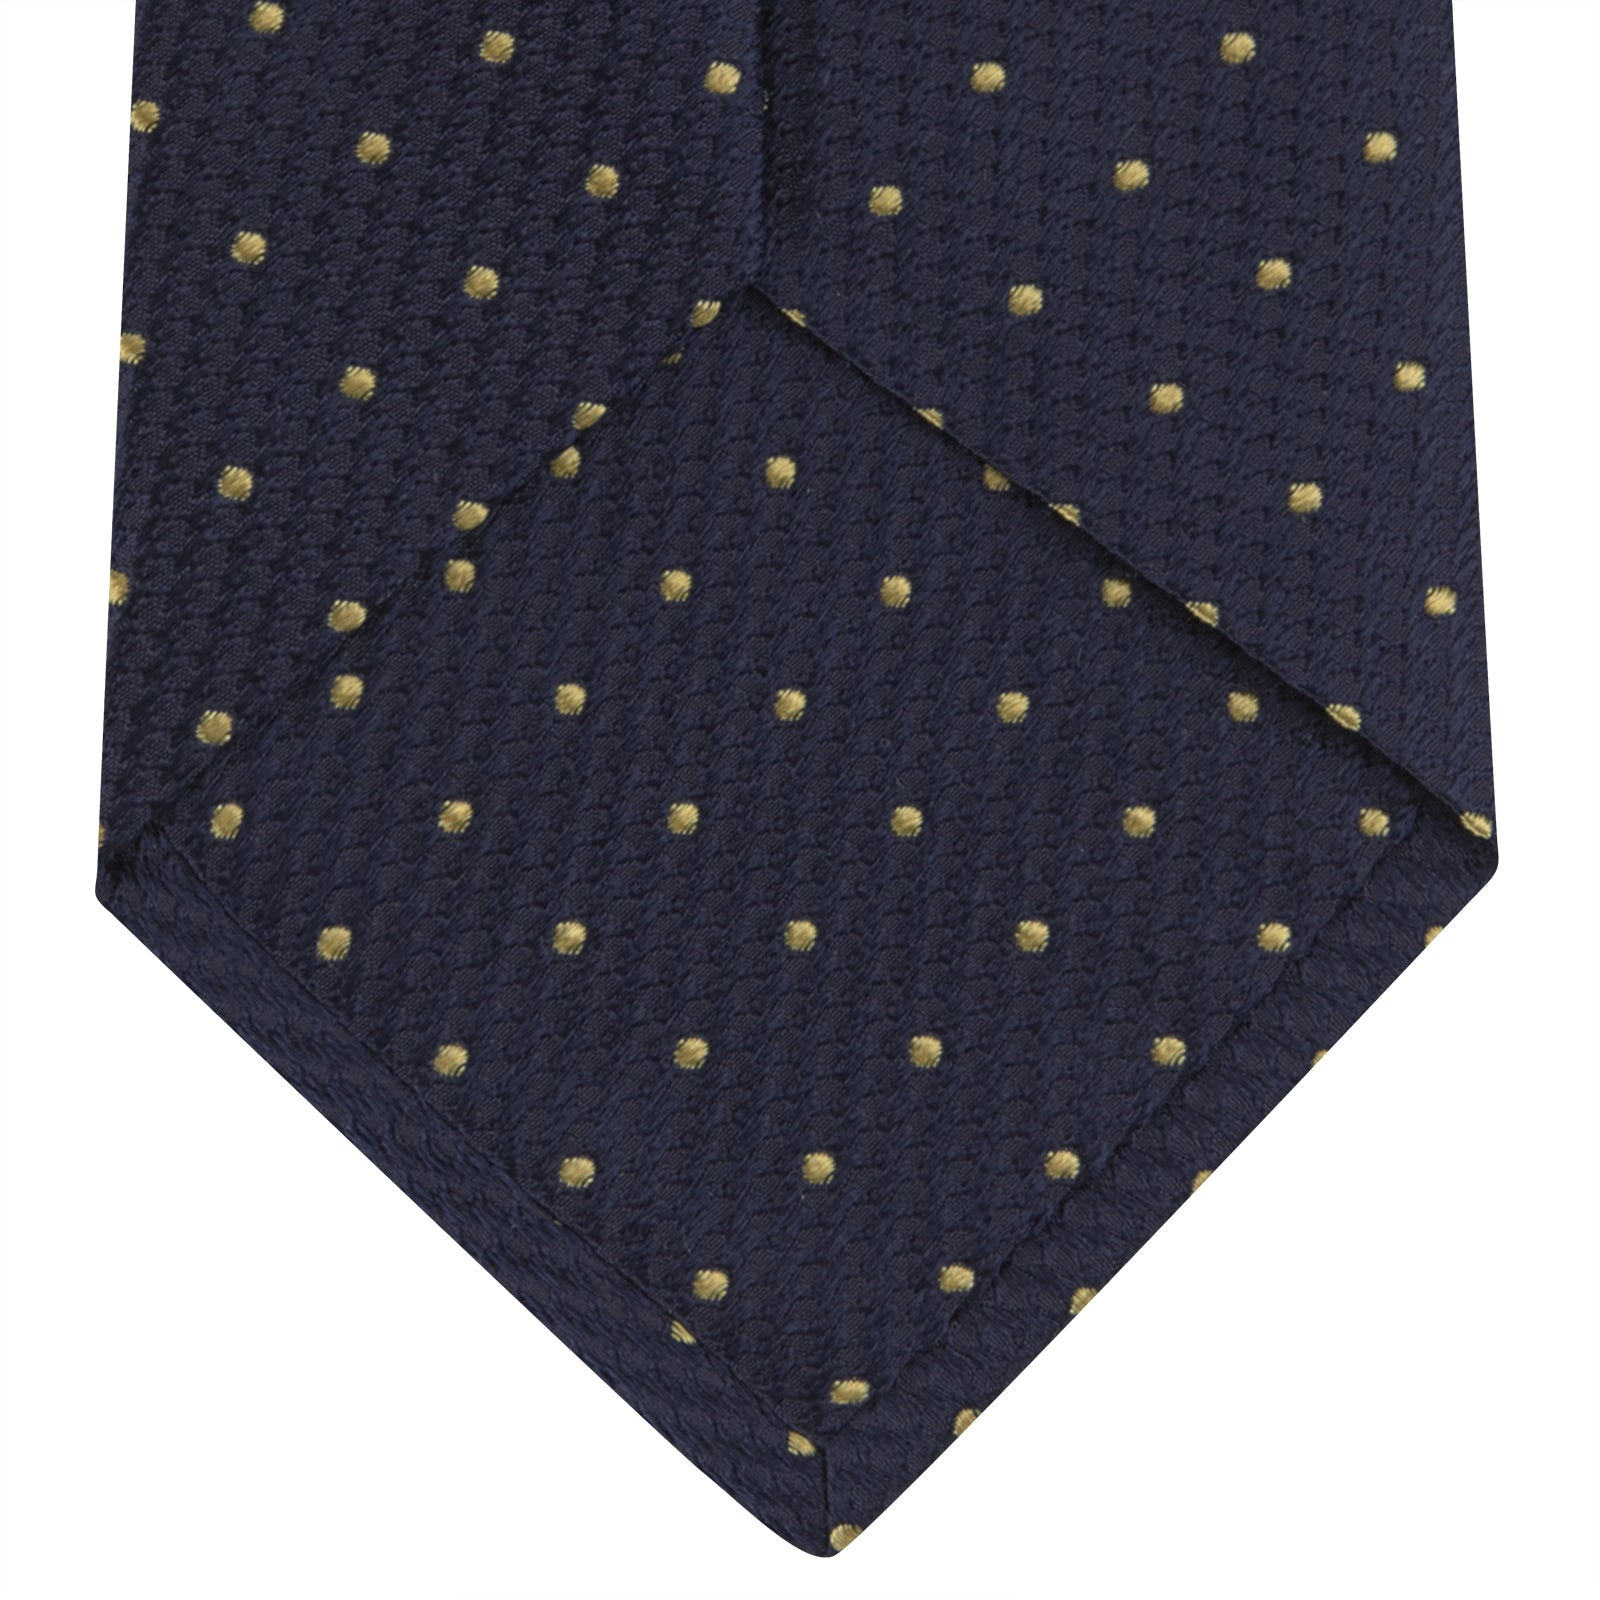 Navy and Gold Spot Lace Silk Tie